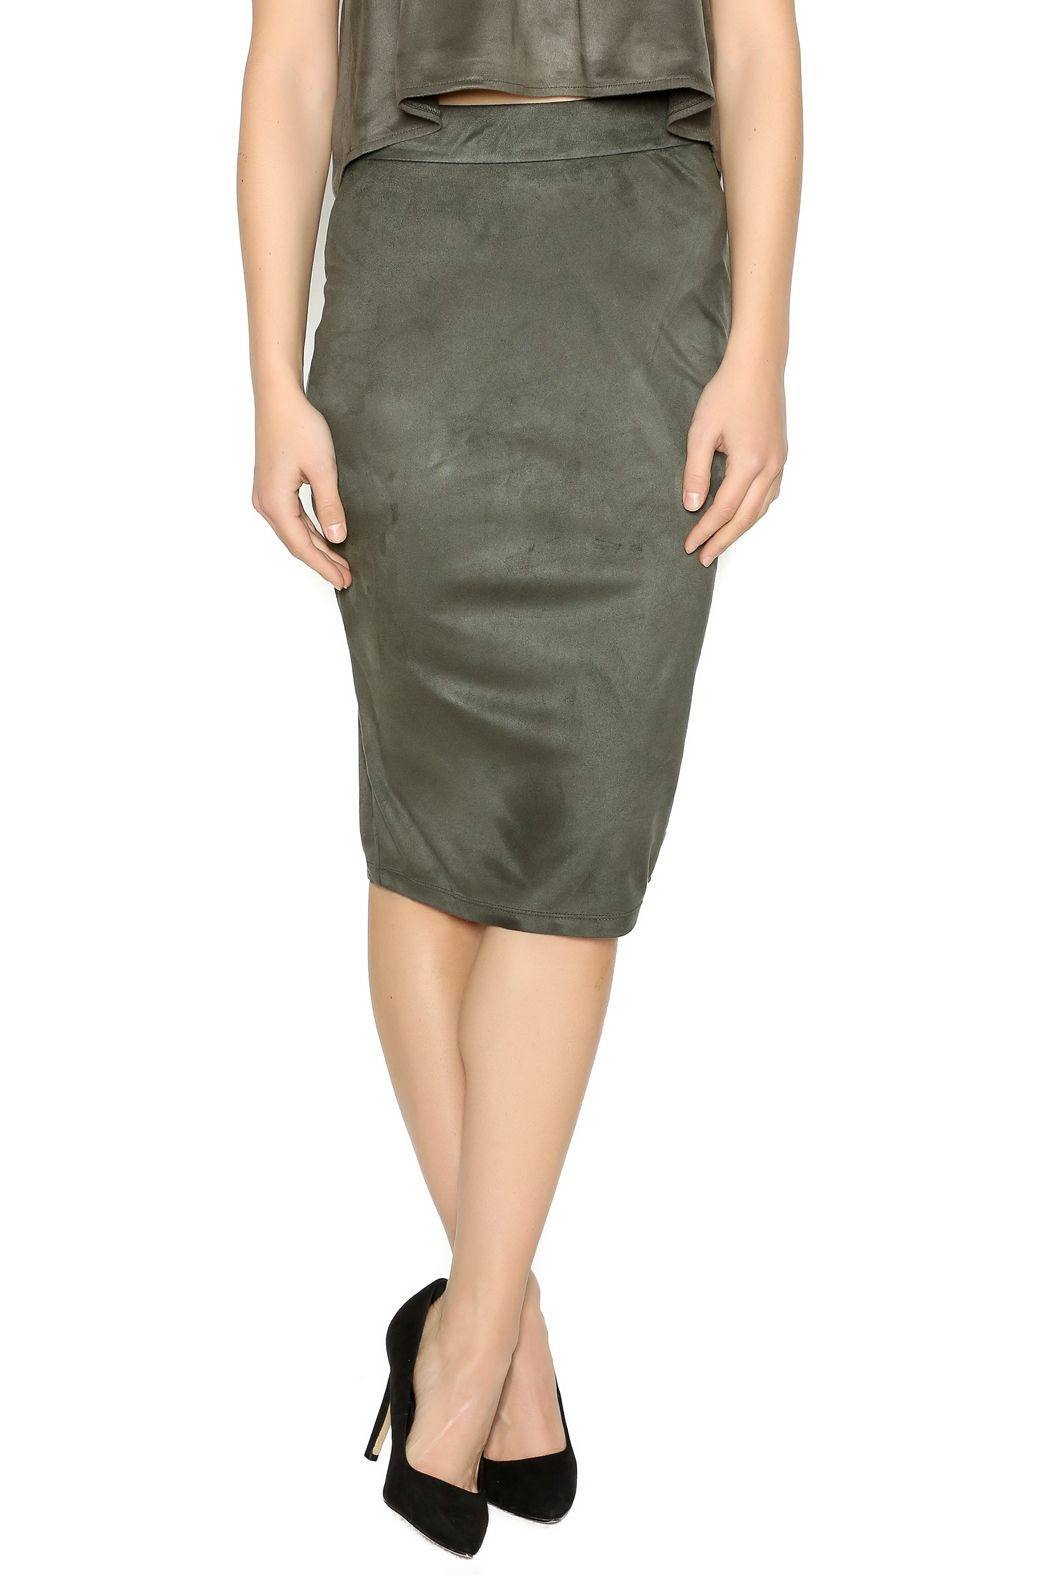 5b519fc86 Faux suede olive green pencil skirt with an elastic waist. Faux Suede Olive  Skirt by iris. Clothing - Skirts - Knee Clothing - Skirts - Suede Clothing  ...